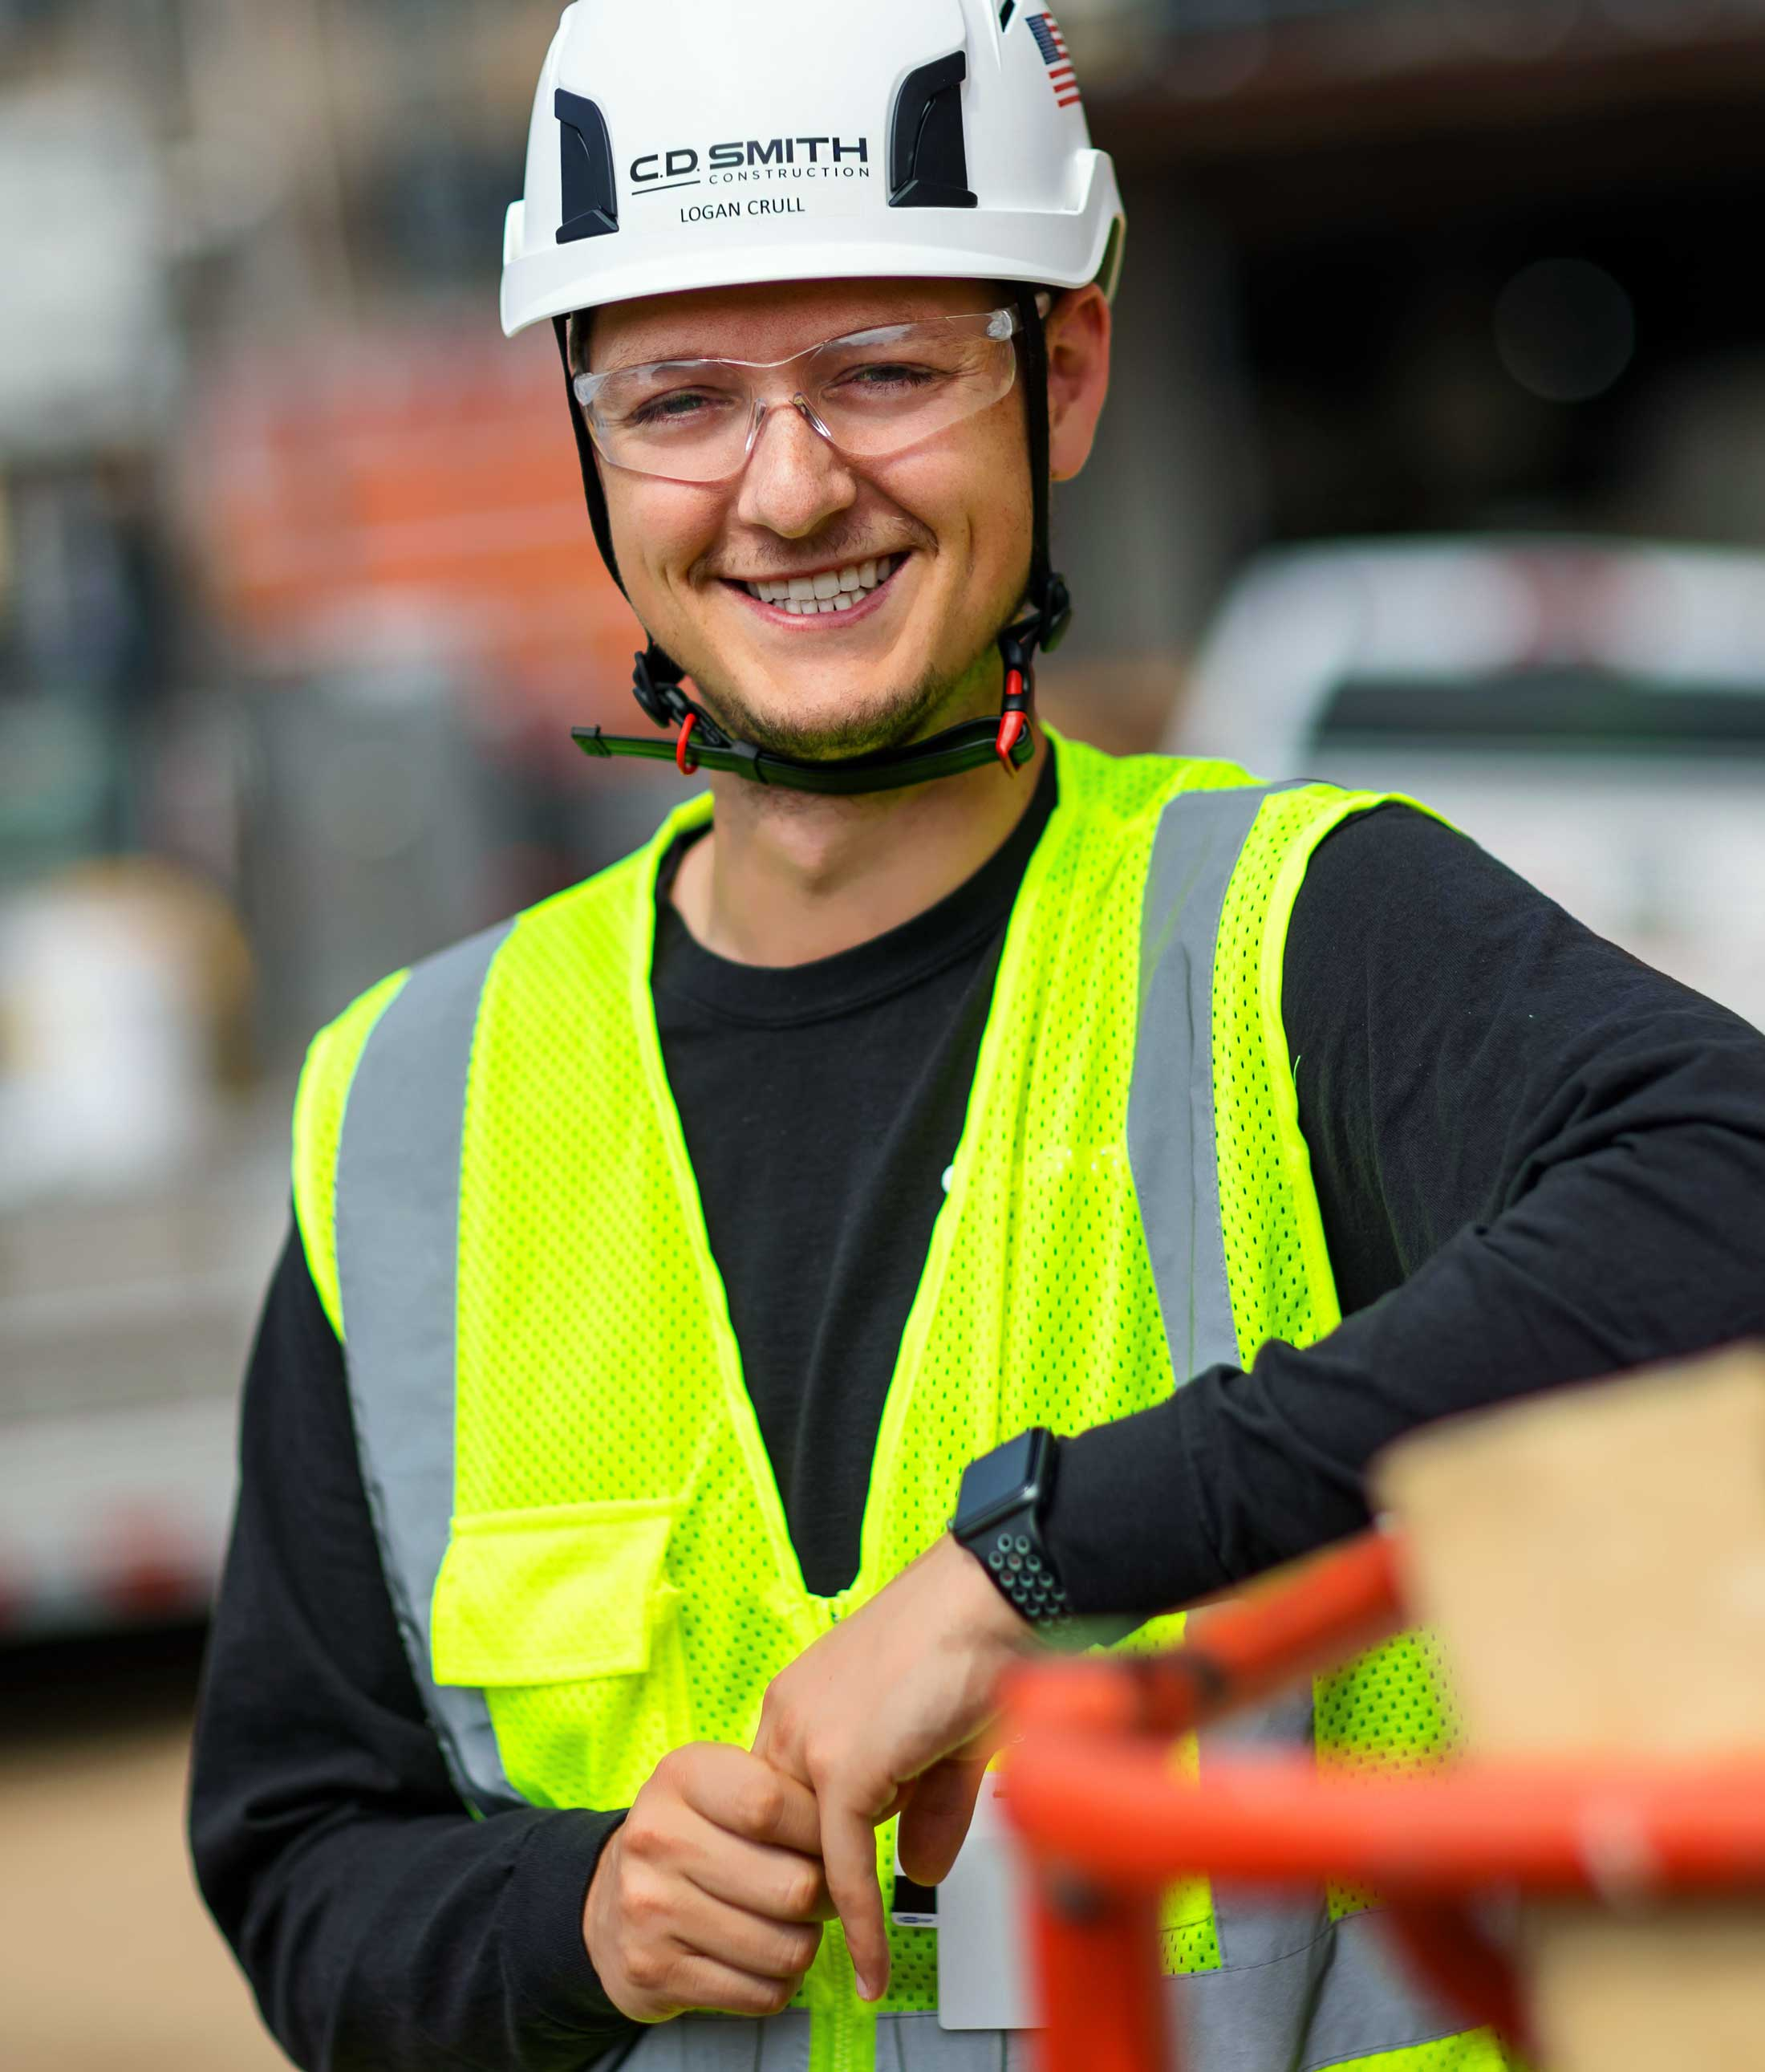 C.D. Smith Construction Project Manager Logan Krull